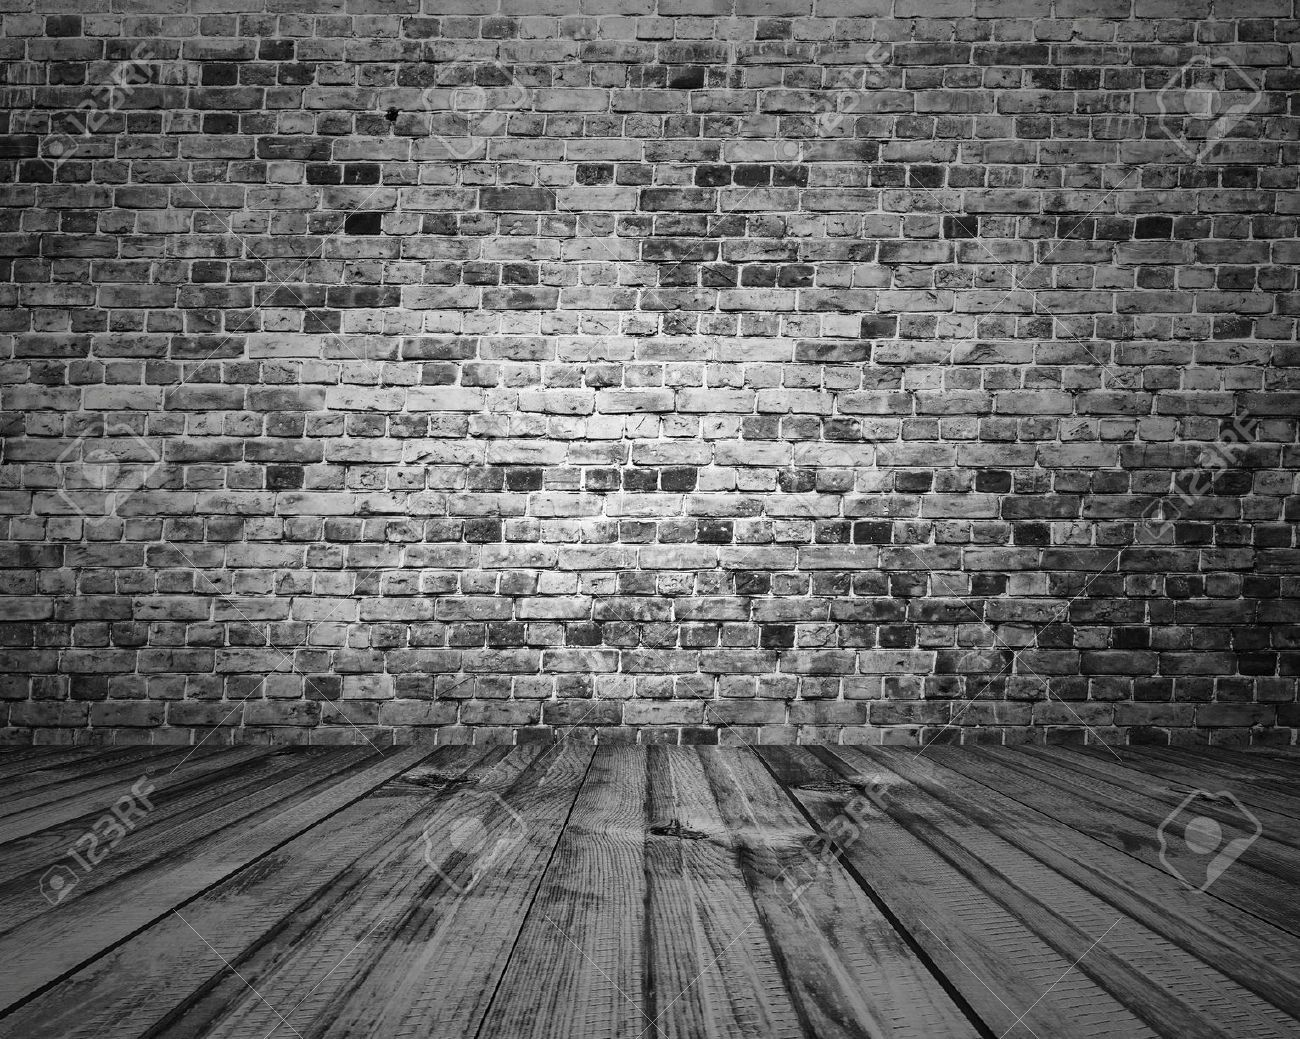 Old Room With Brick Wall Grey Vintage Background Stock Photo